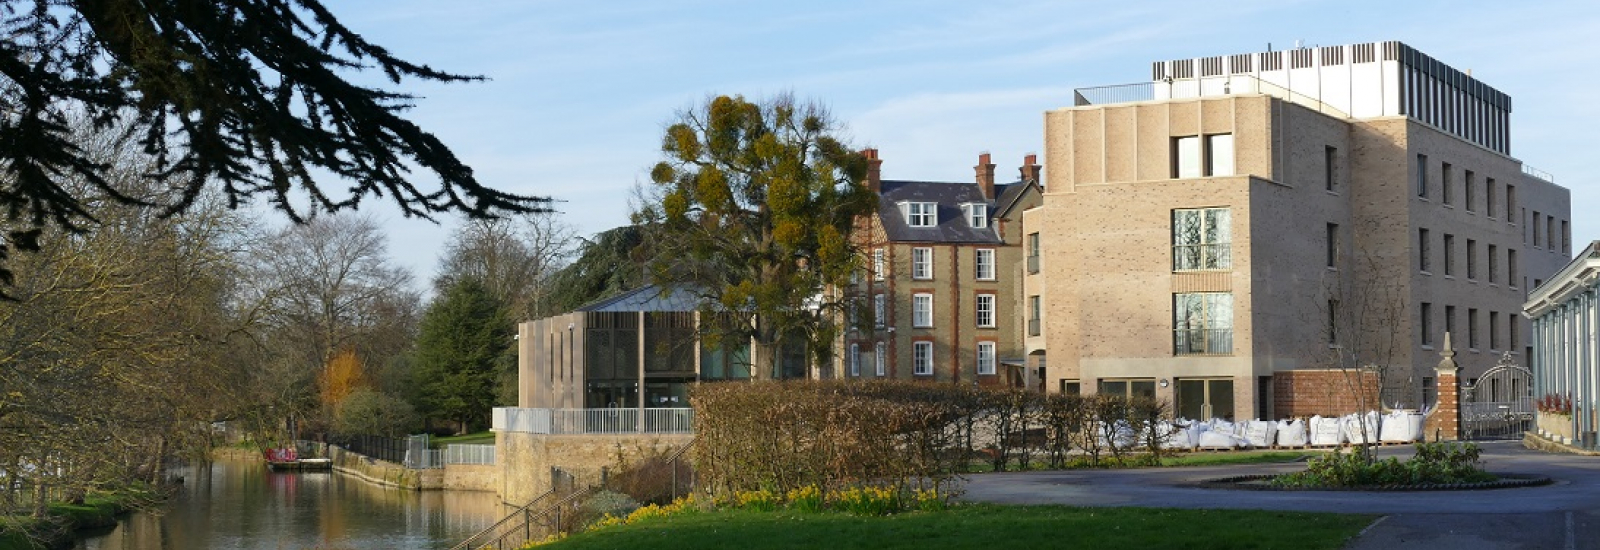 Anniversary Building and Pavilion at St Hilda's College